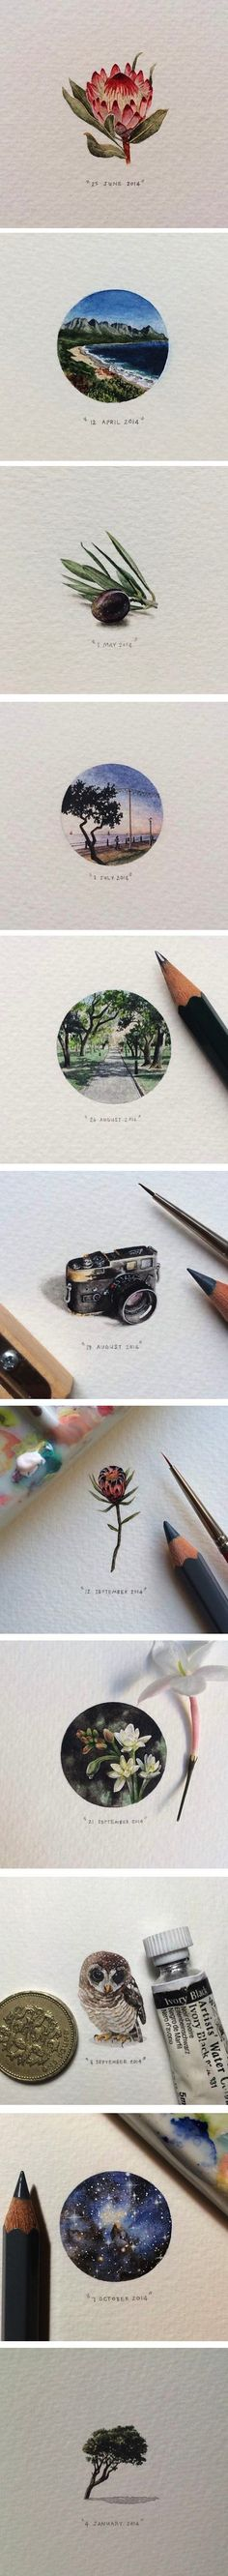 365 Postcards for Ants, miniature watercolors by Lorraine Loots